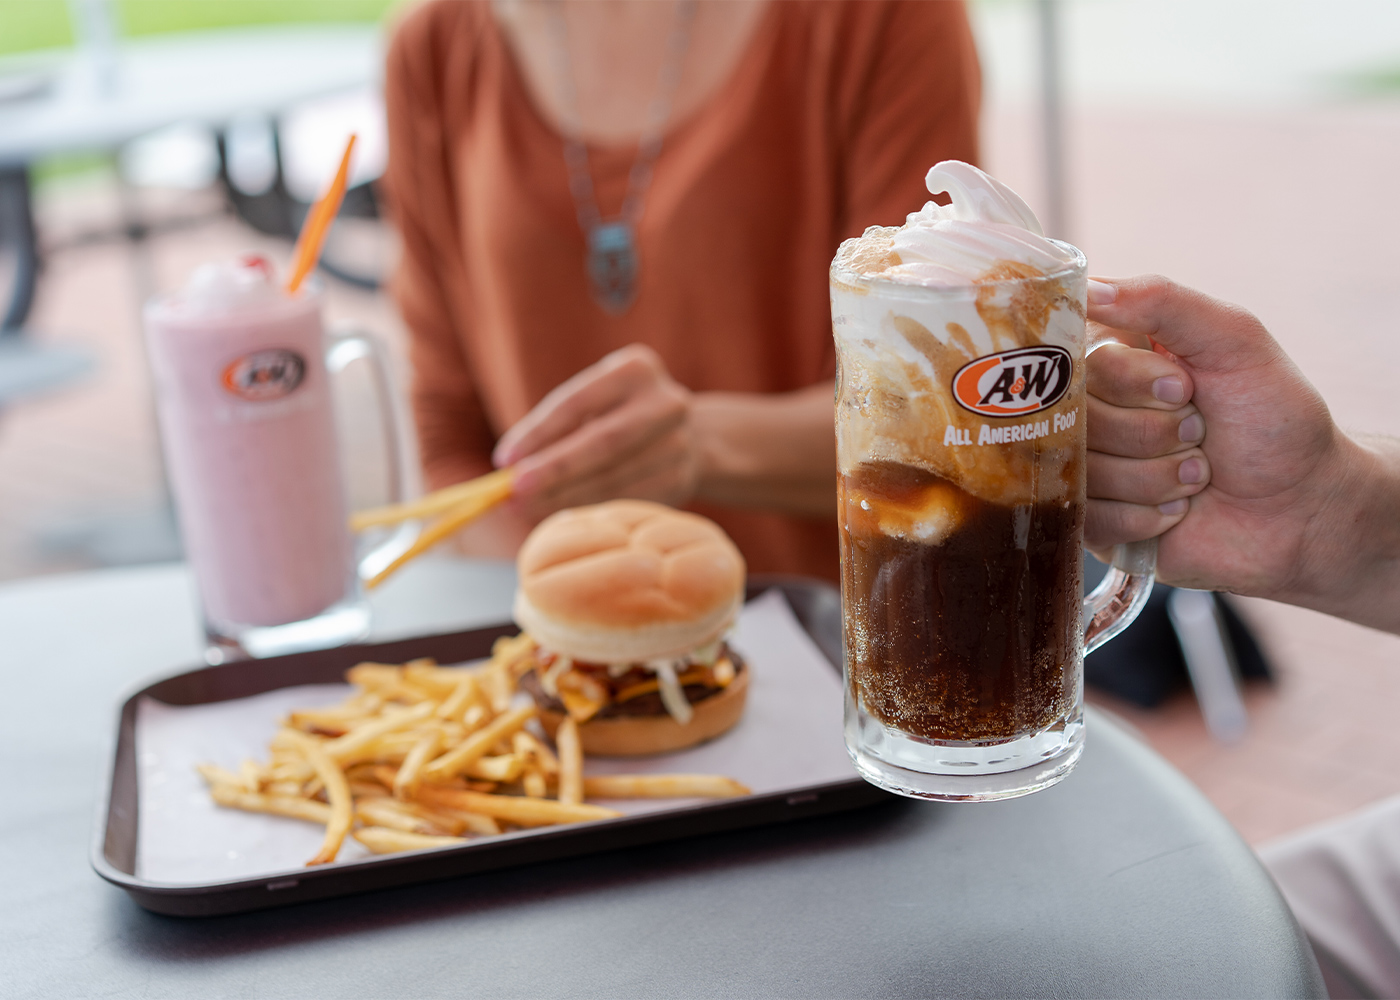 Photo of two people sitting at a table. Person in the foreground is holding an A&W Root Beer Float in a frosty mug. Person in background is holding a fry.